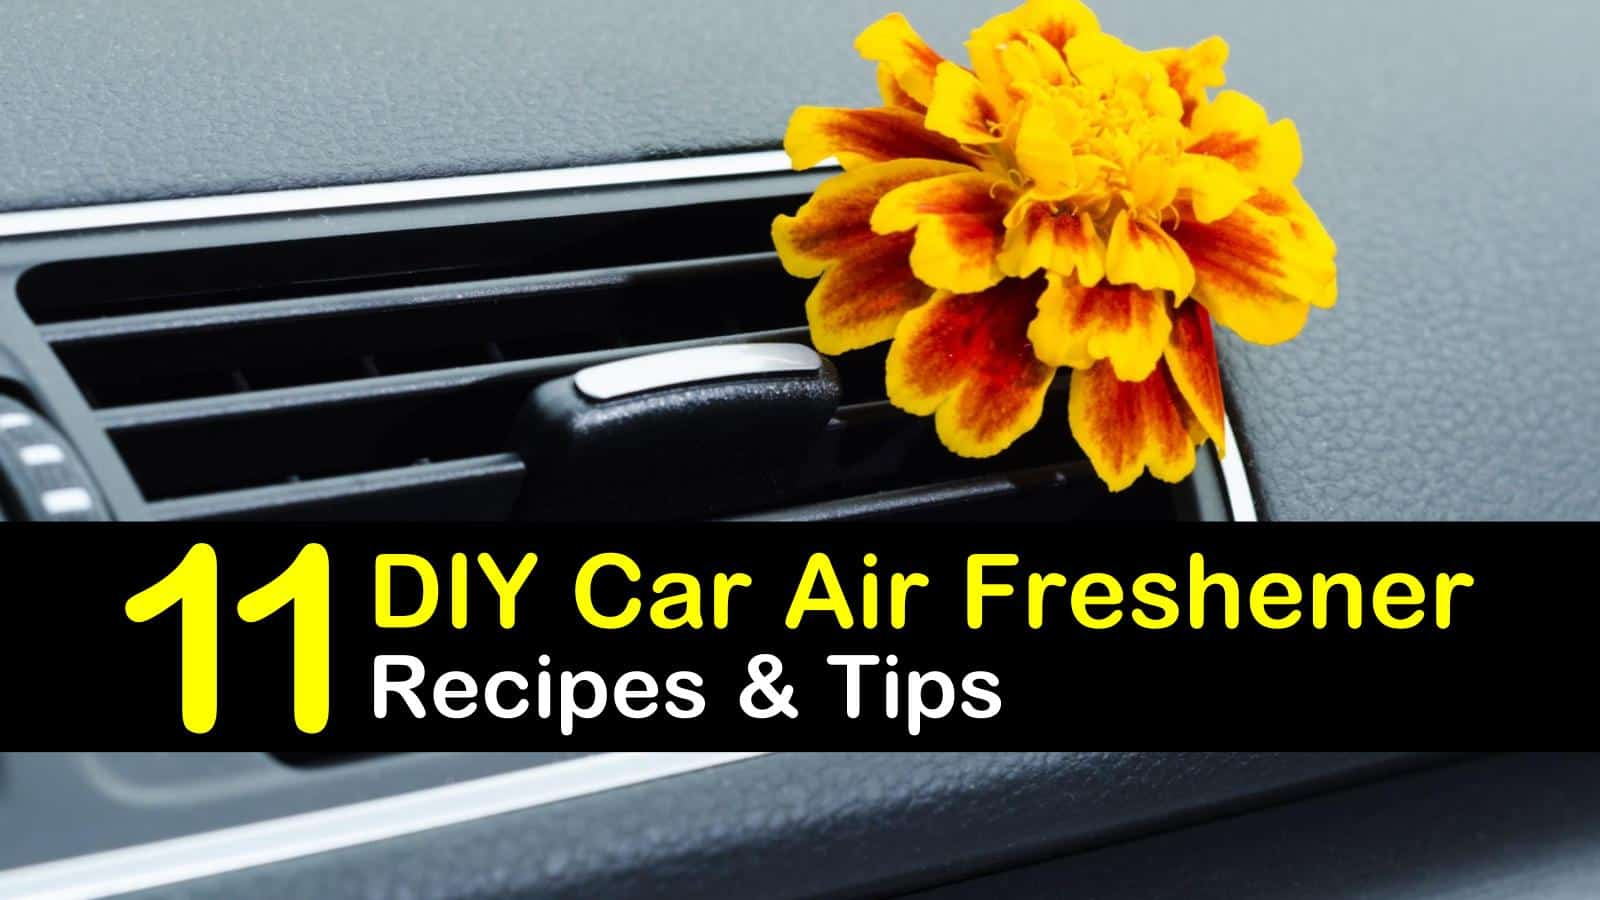 11 All-Natural Homemade Car Air Fresheners